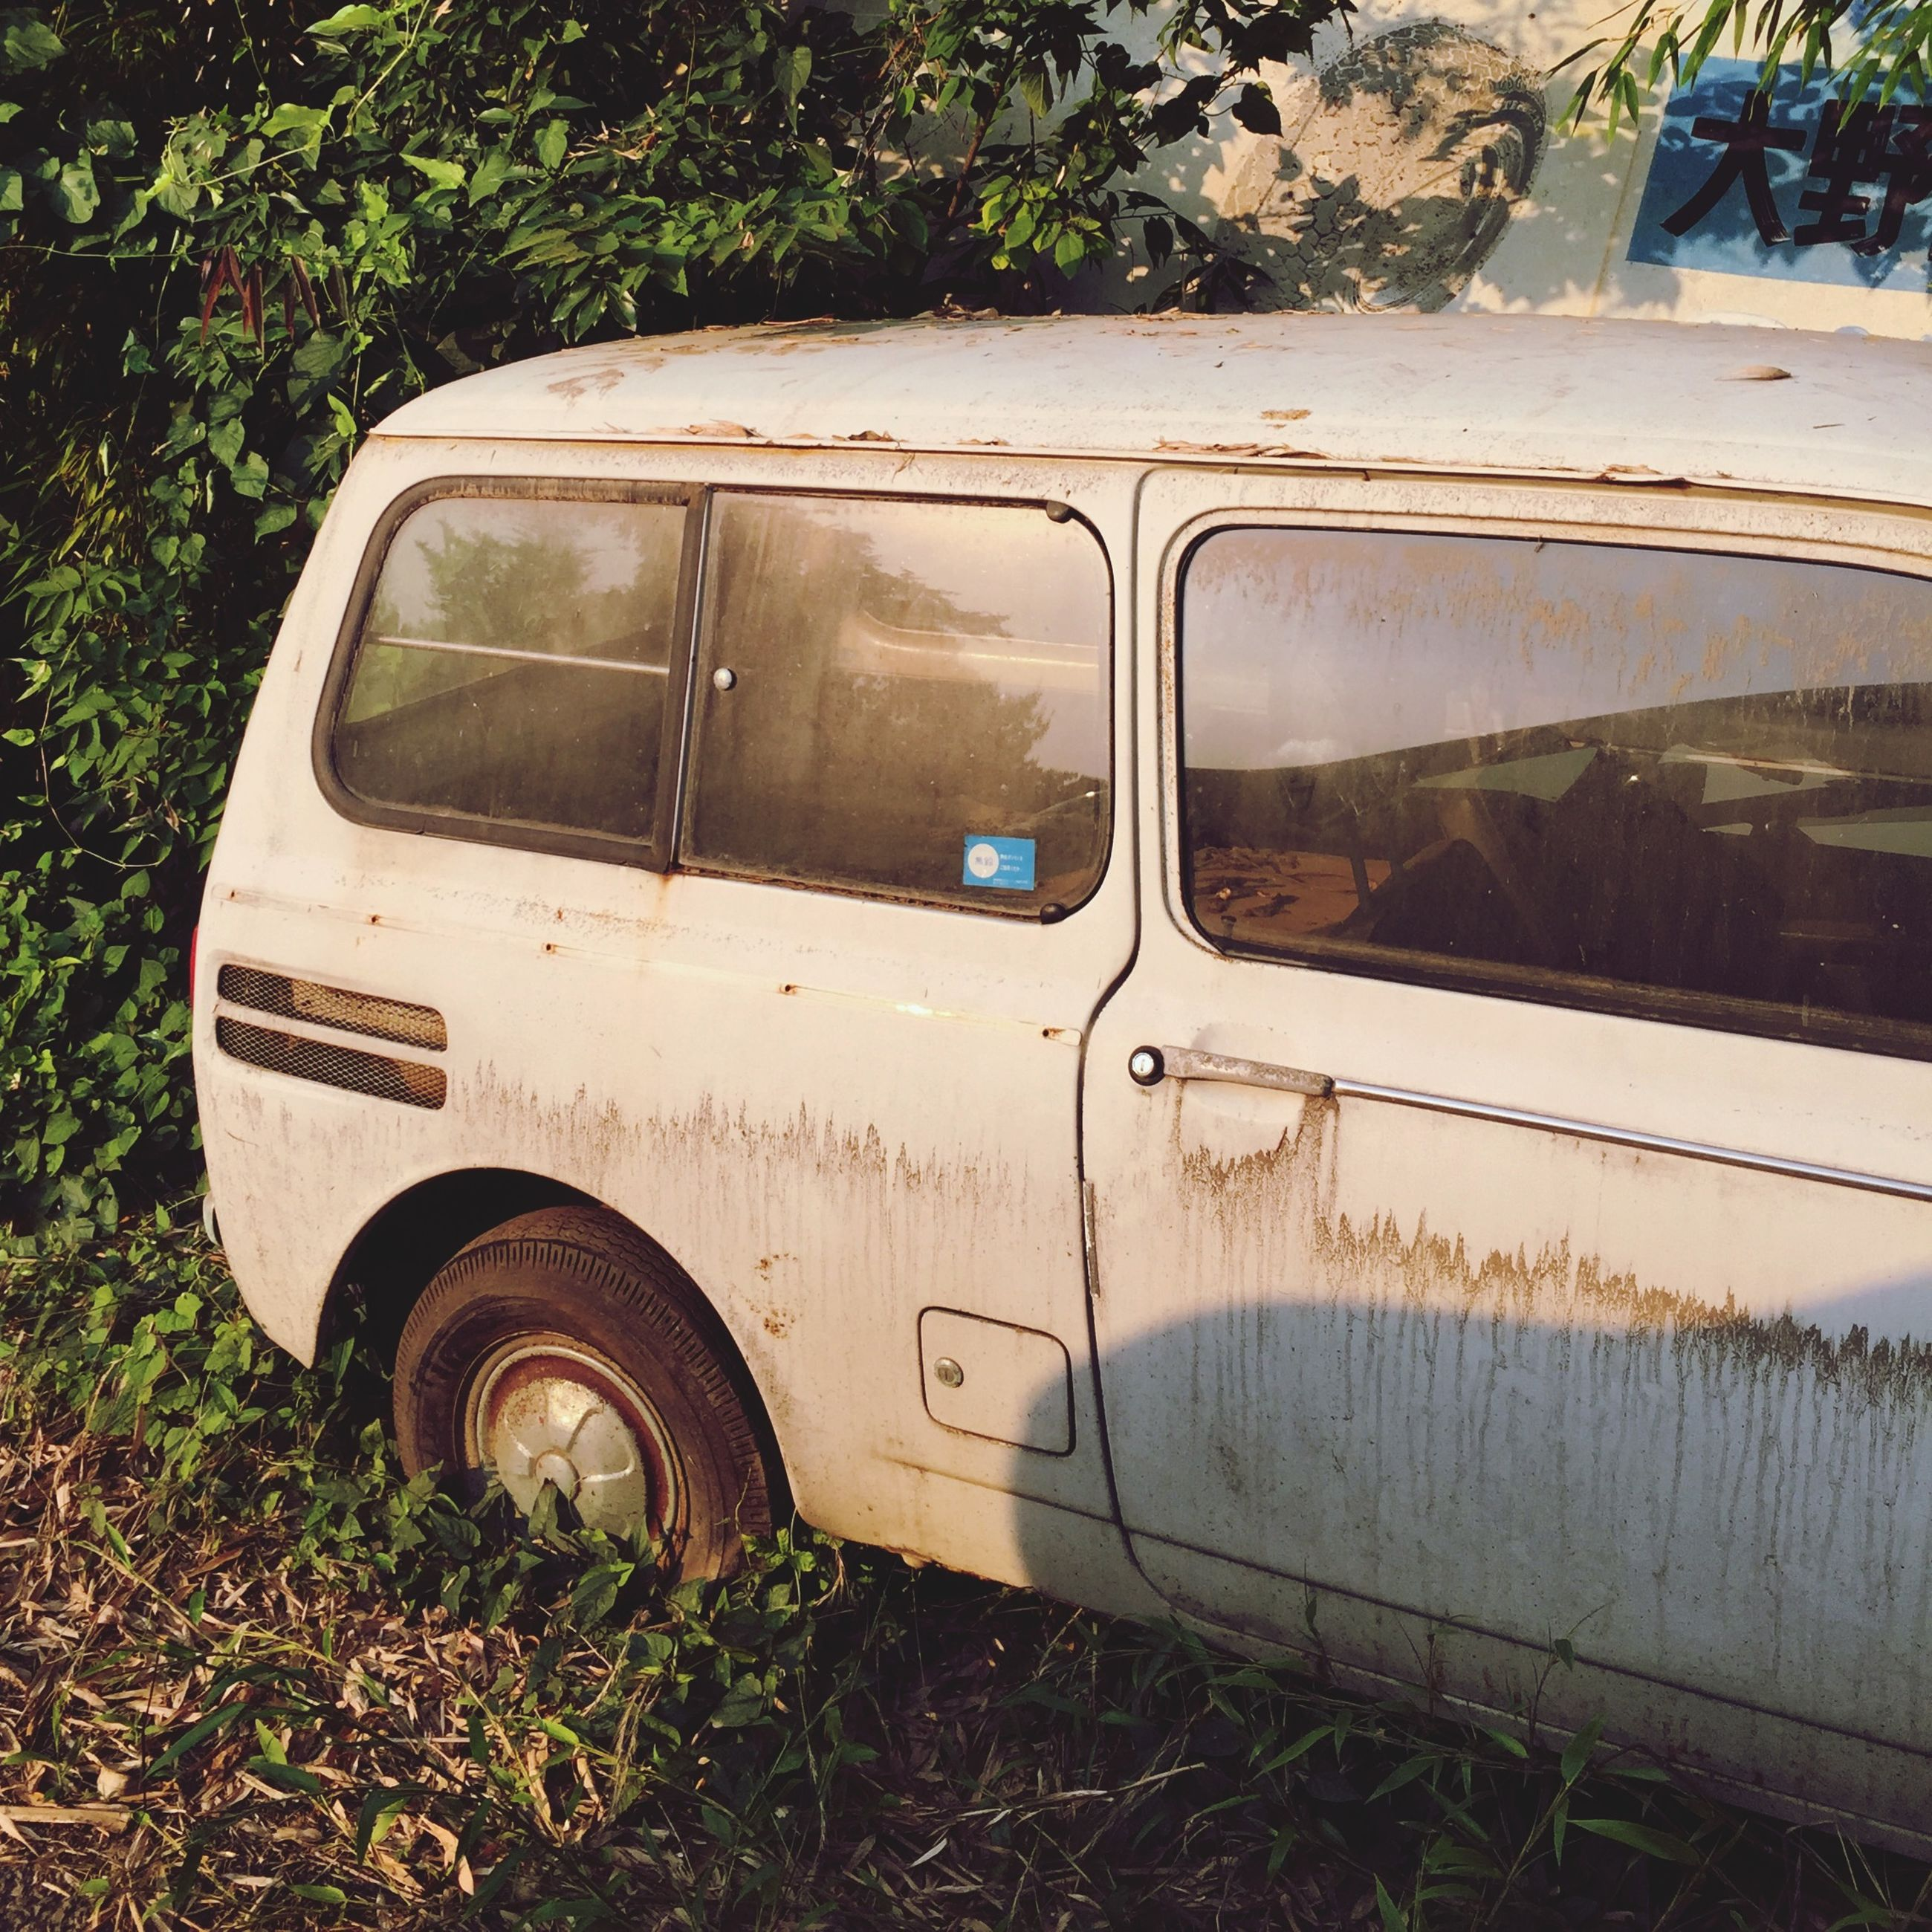 transportation, mode of transport, land vehicle, car, tree, day, travel, grass, part of, old, abandoned, outdoors, no people, street, side-view mirror, train - vehicle, headlight, field, road, close-up